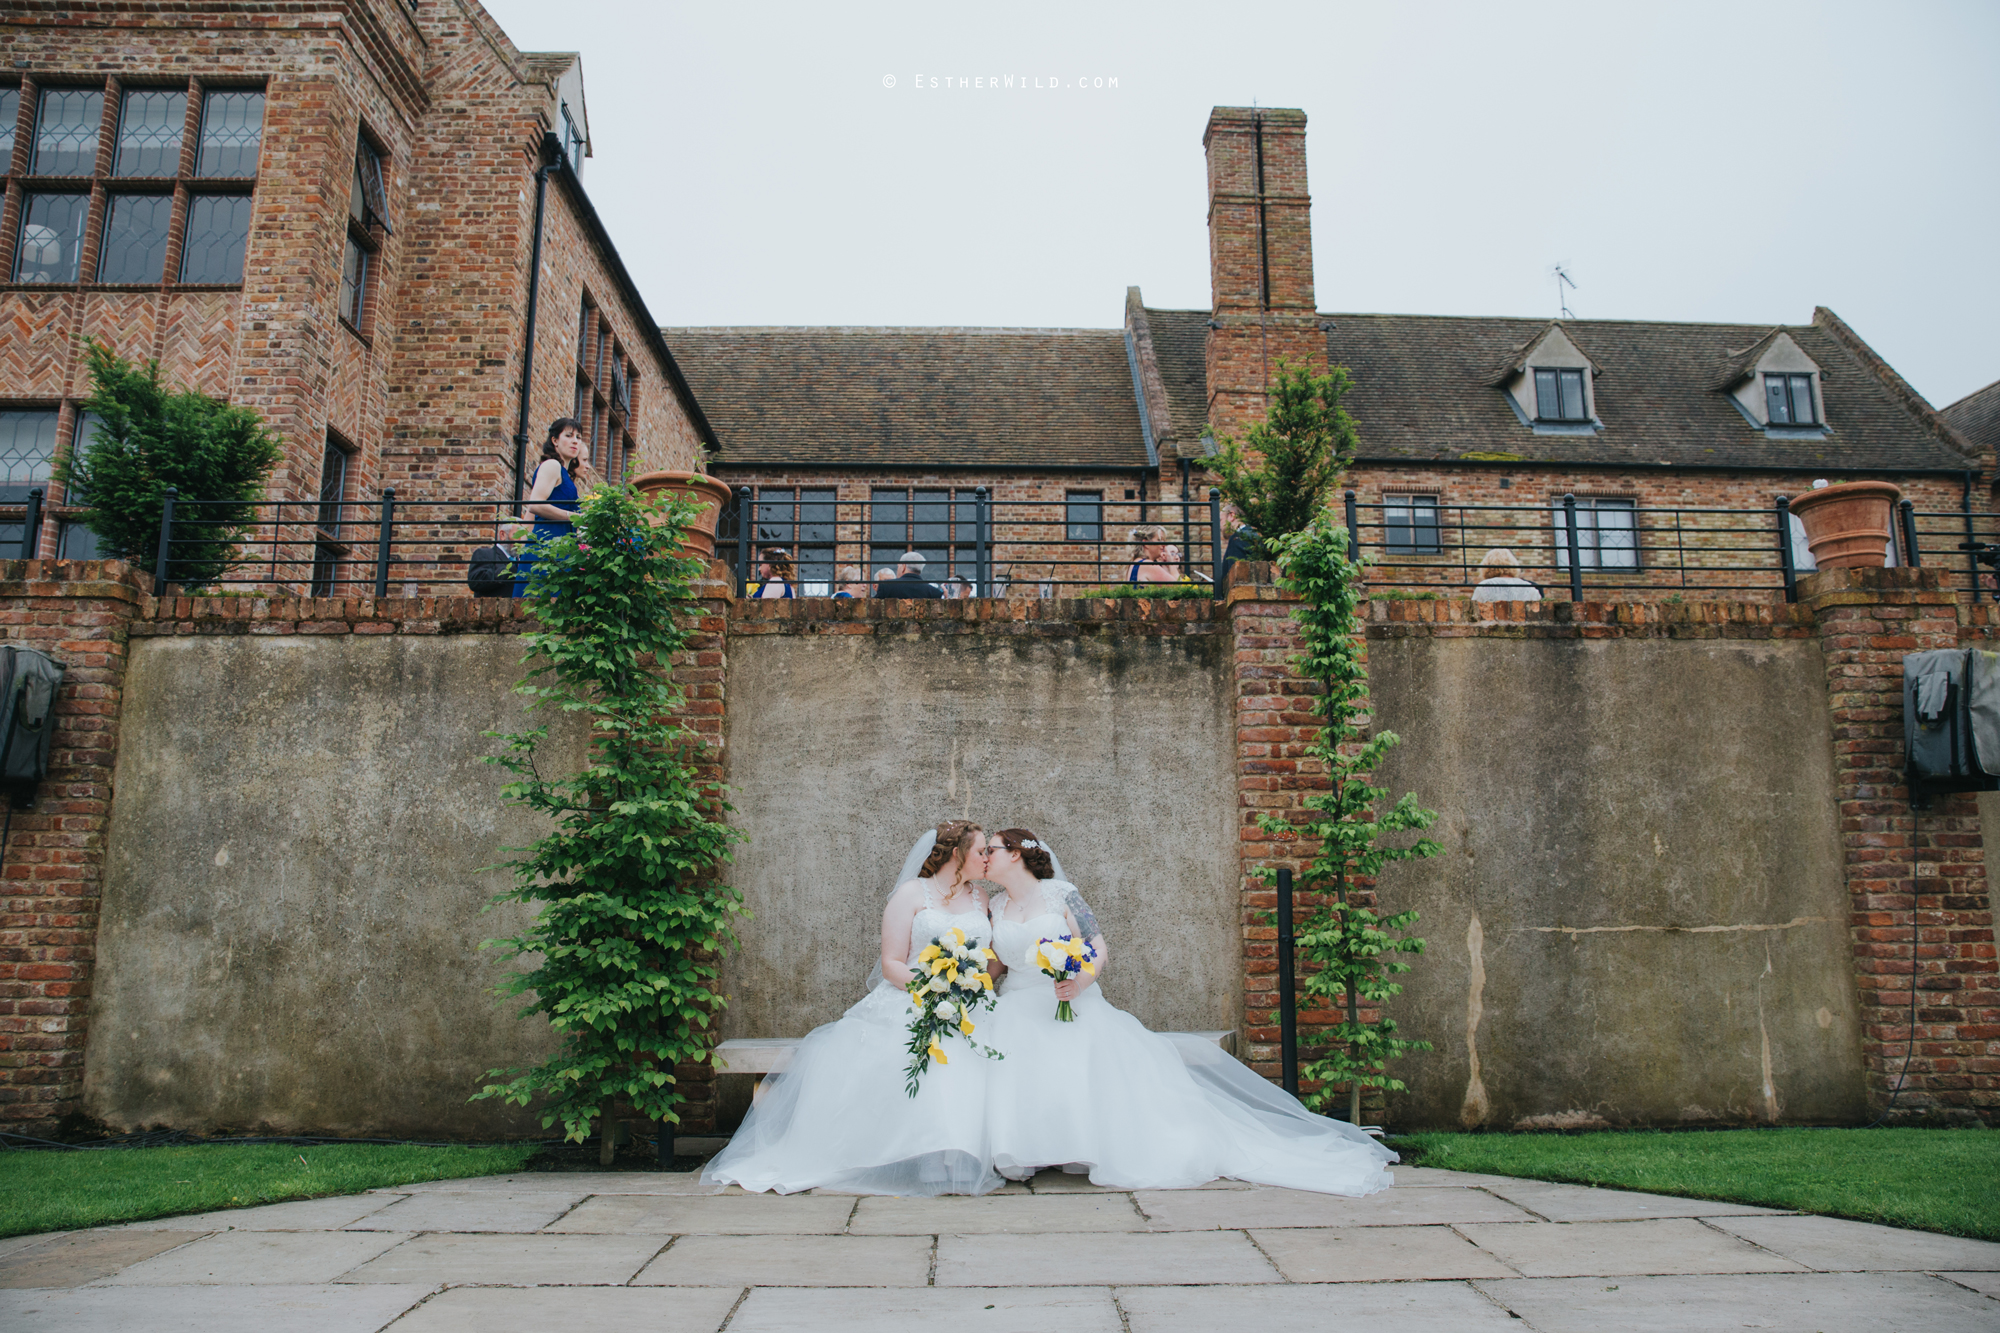 Old_Hall_Ely_Wedding_Esther_Wild_Photographer_IMG_1315.jpg